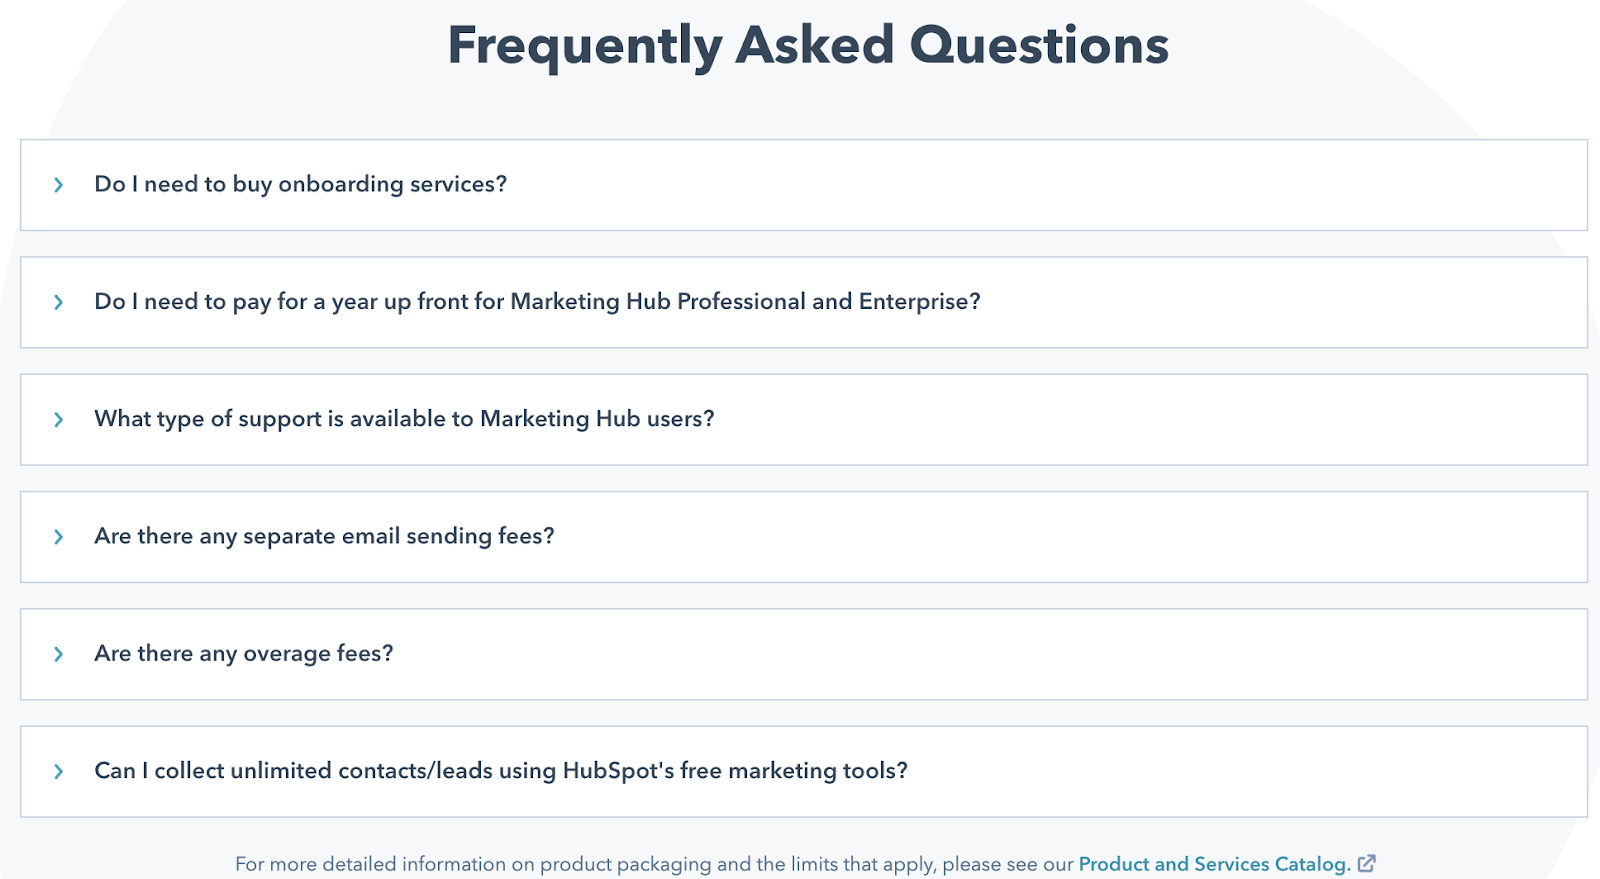 HubSpot pricing page frequently asked questions.